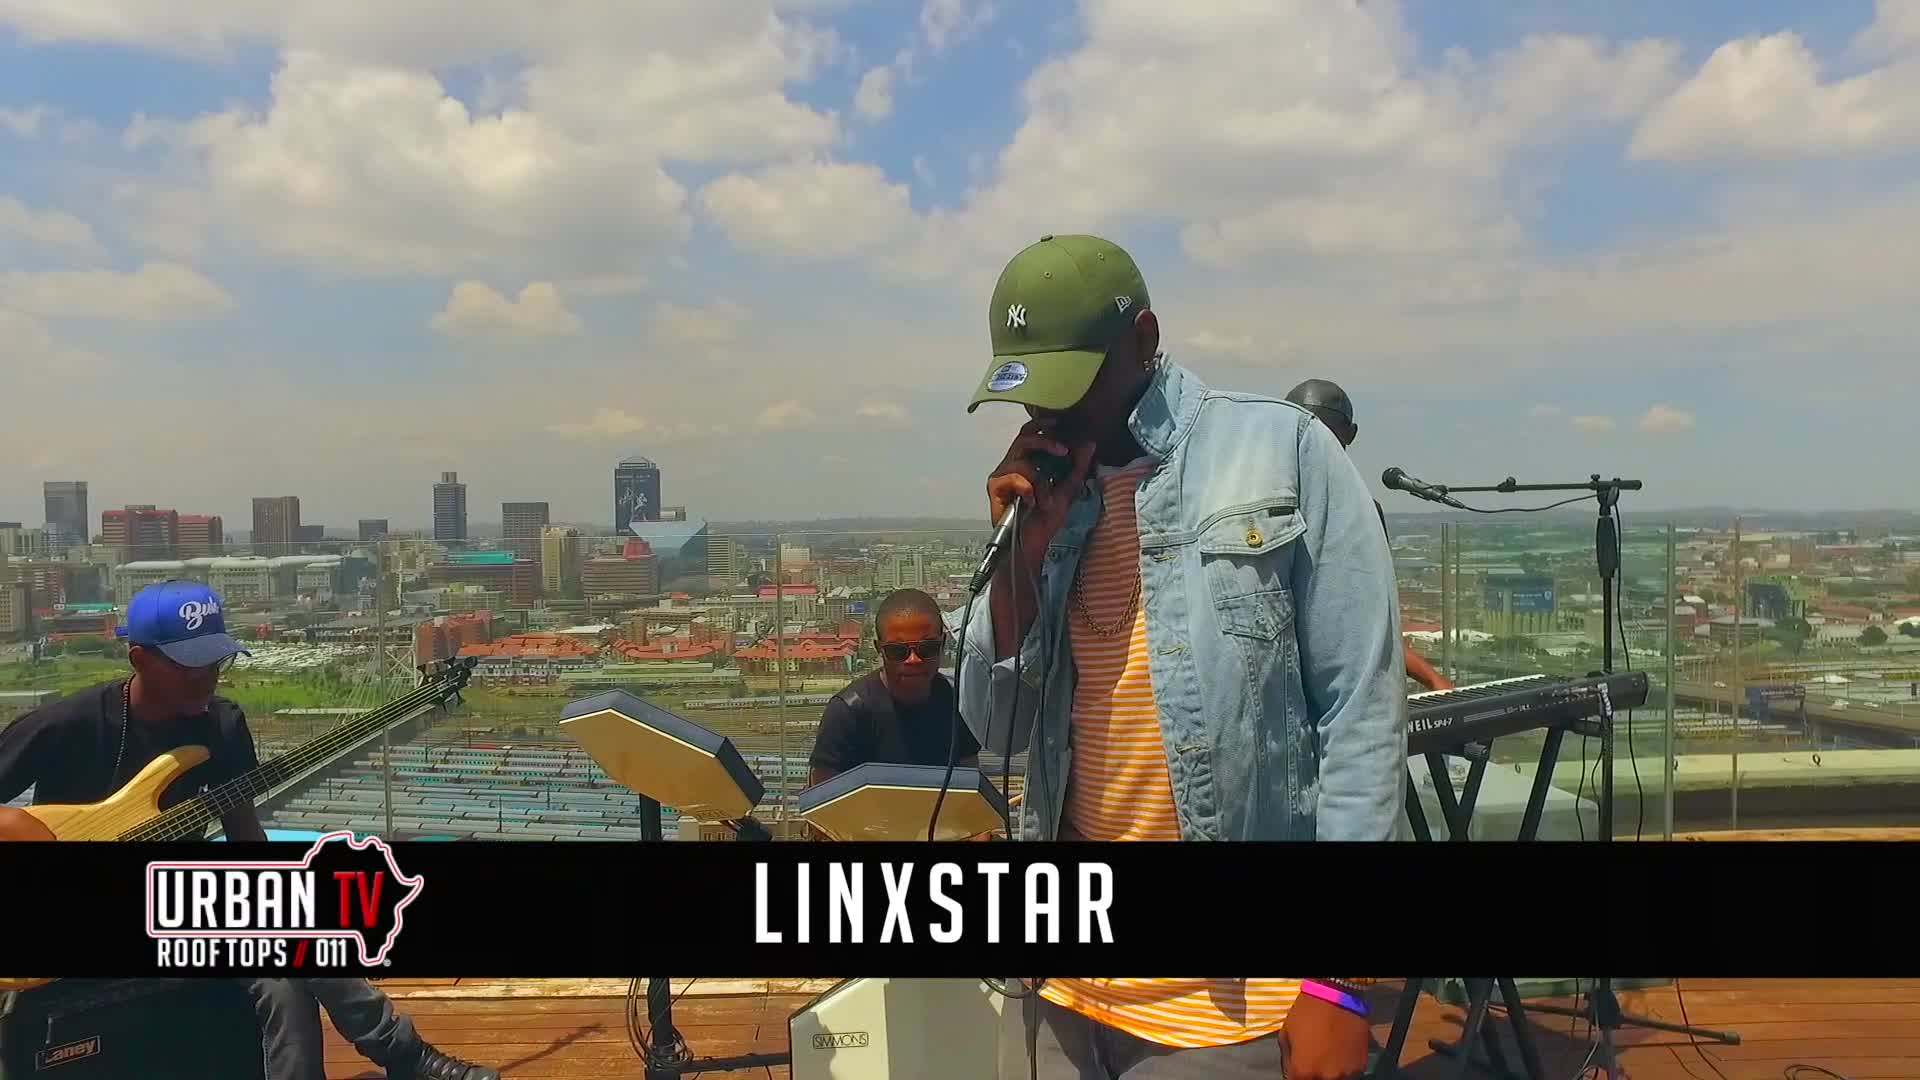 Linxstar - What